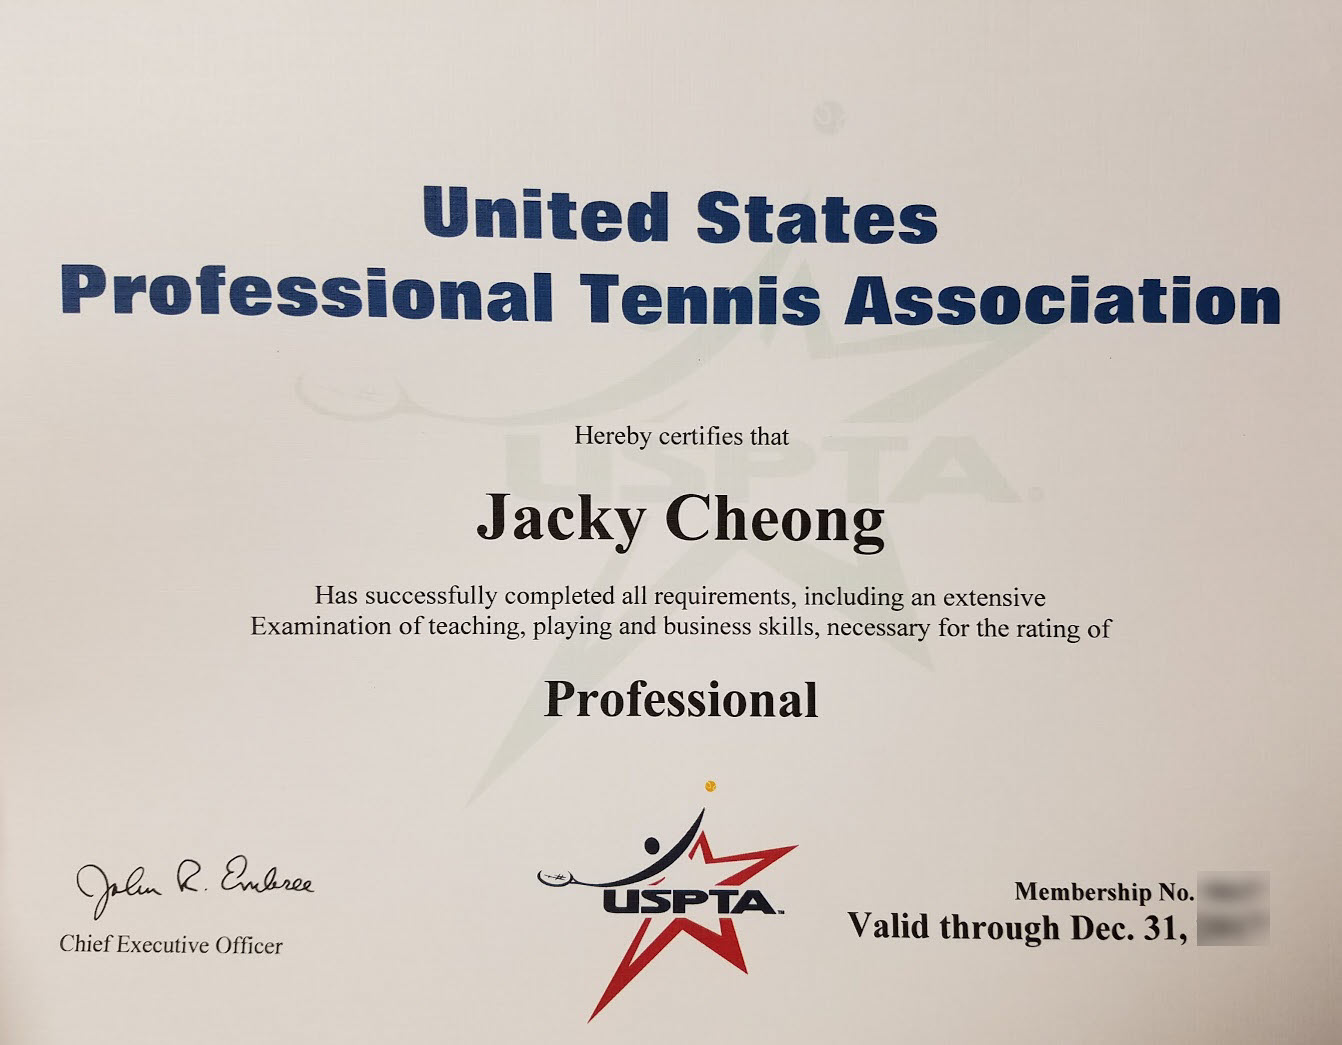 Atp tennis travels uspta professional exam tips and course review uspta and tennis coaching 1betcityfo Image collections